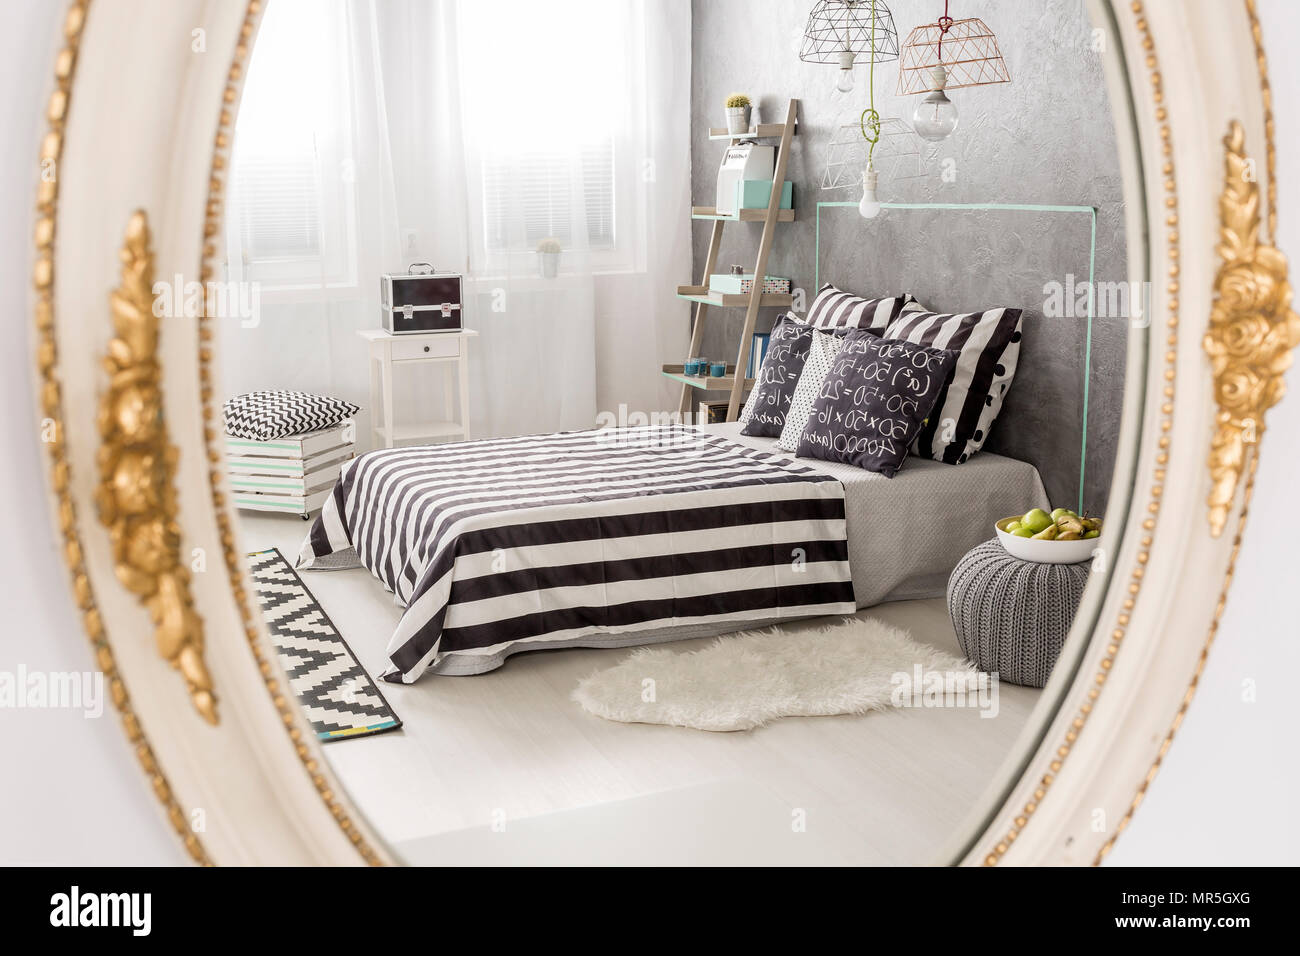 Mirror Reflection Of A Contemporary Bedroom Round Mirror With White Stylish Frame Stock Photo Alamy